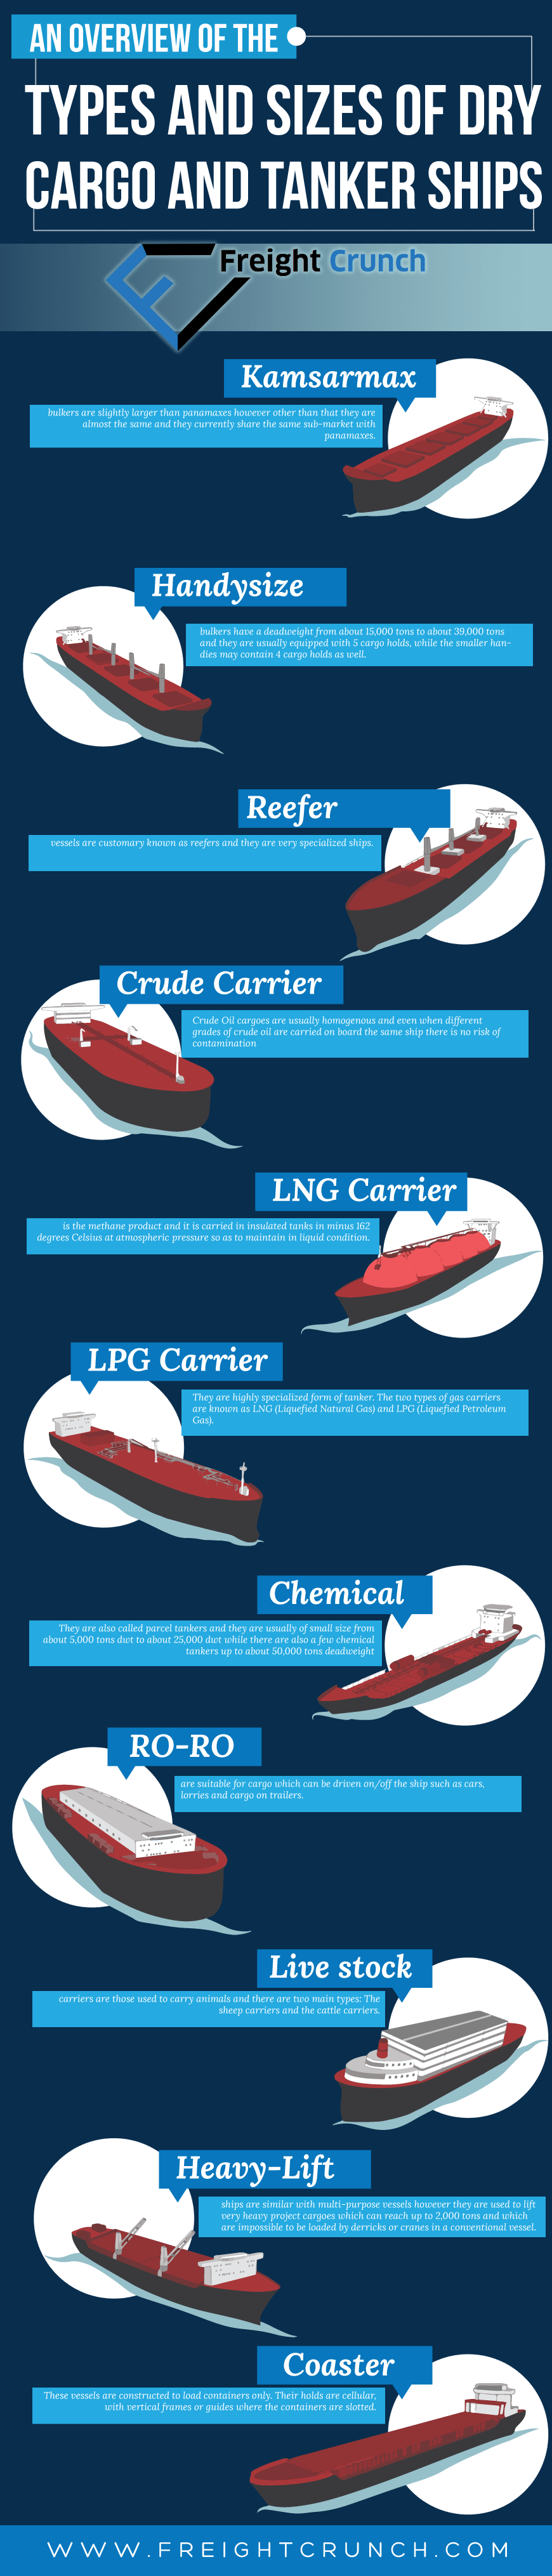 An Overview of the Types and Sizes of Dry Cargo and Tanker Ships